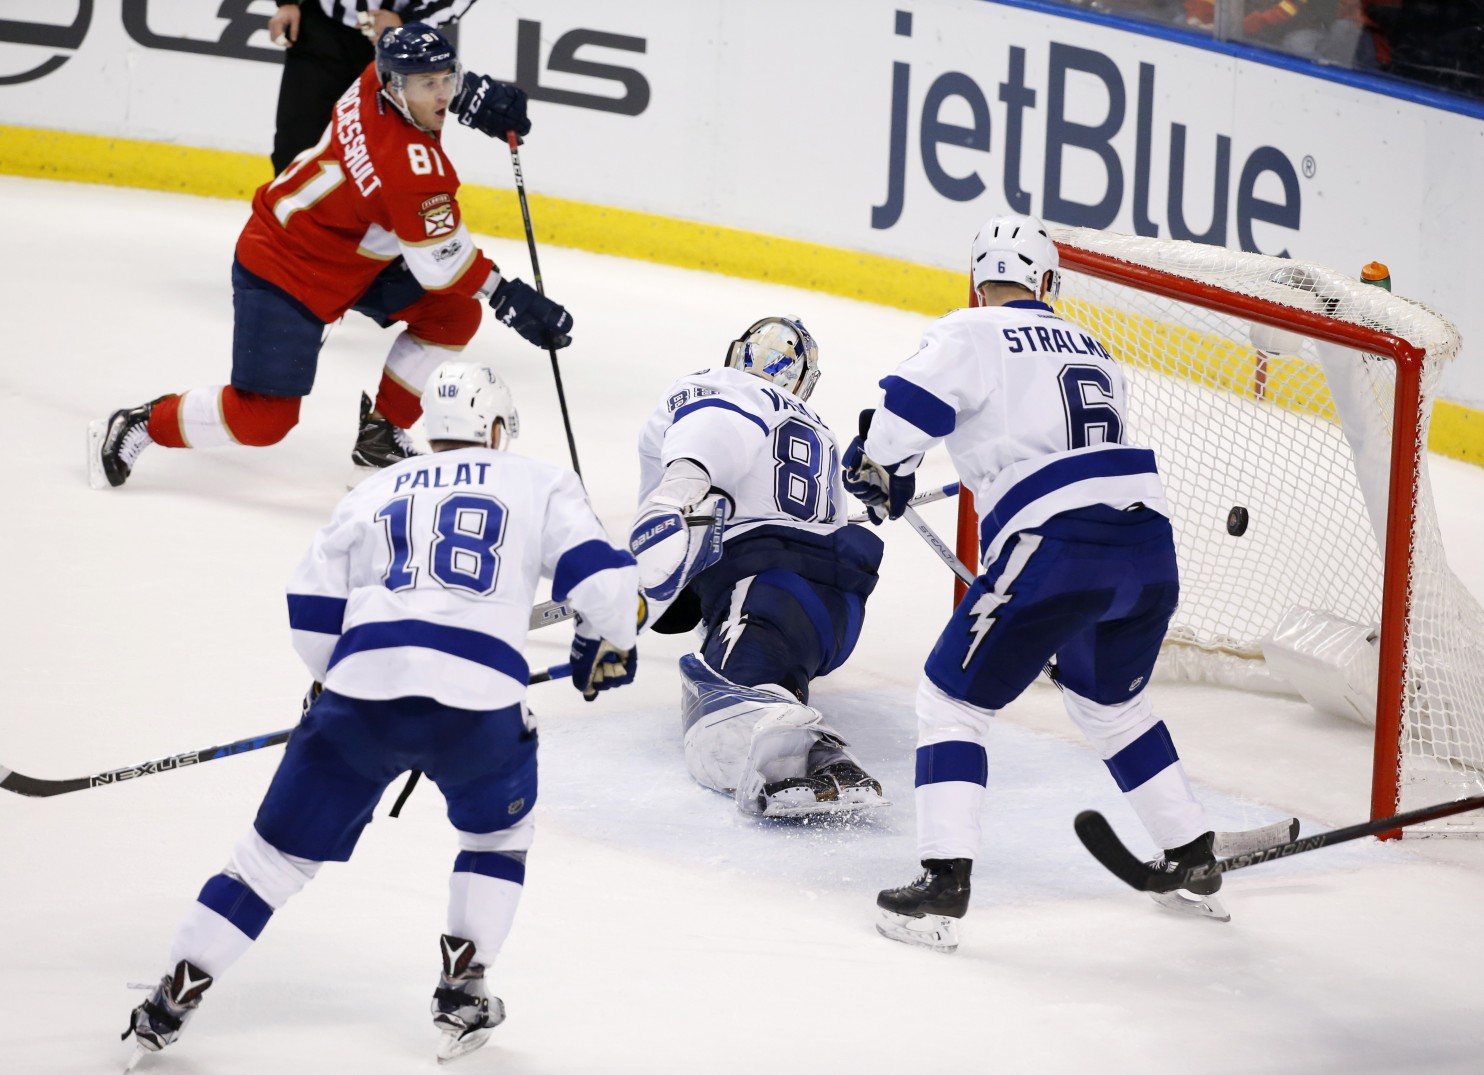 Game Recap: Cats Beat Bolts In OT To End Failed Road Trip